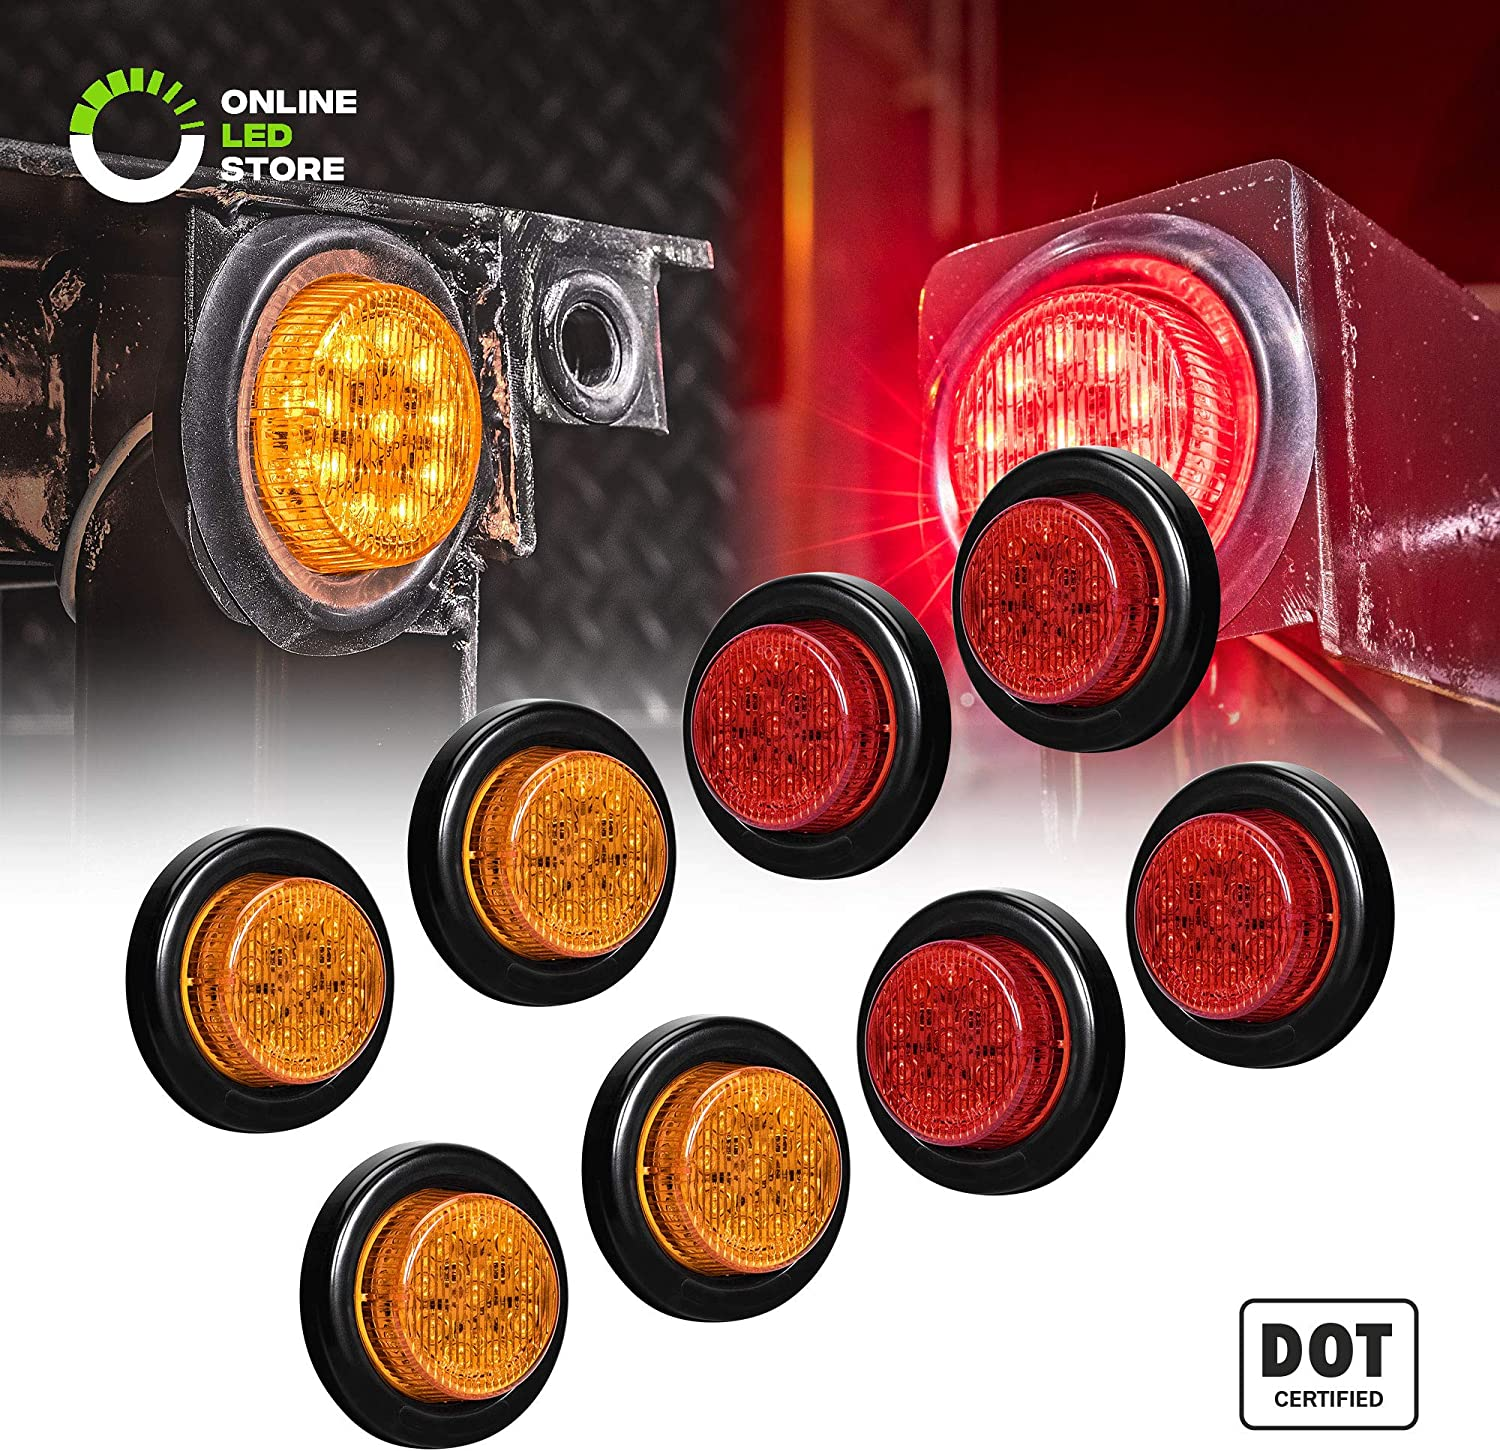 Abrams 2 Red 10 LED Side Marker Trailer Lights 1 Pack IP67 Submersible 2 in 1 Reflector Round Clearance Light Waterproof For Trucks /& Trailers Polycarbonate Reflector SAE//DOT Certified